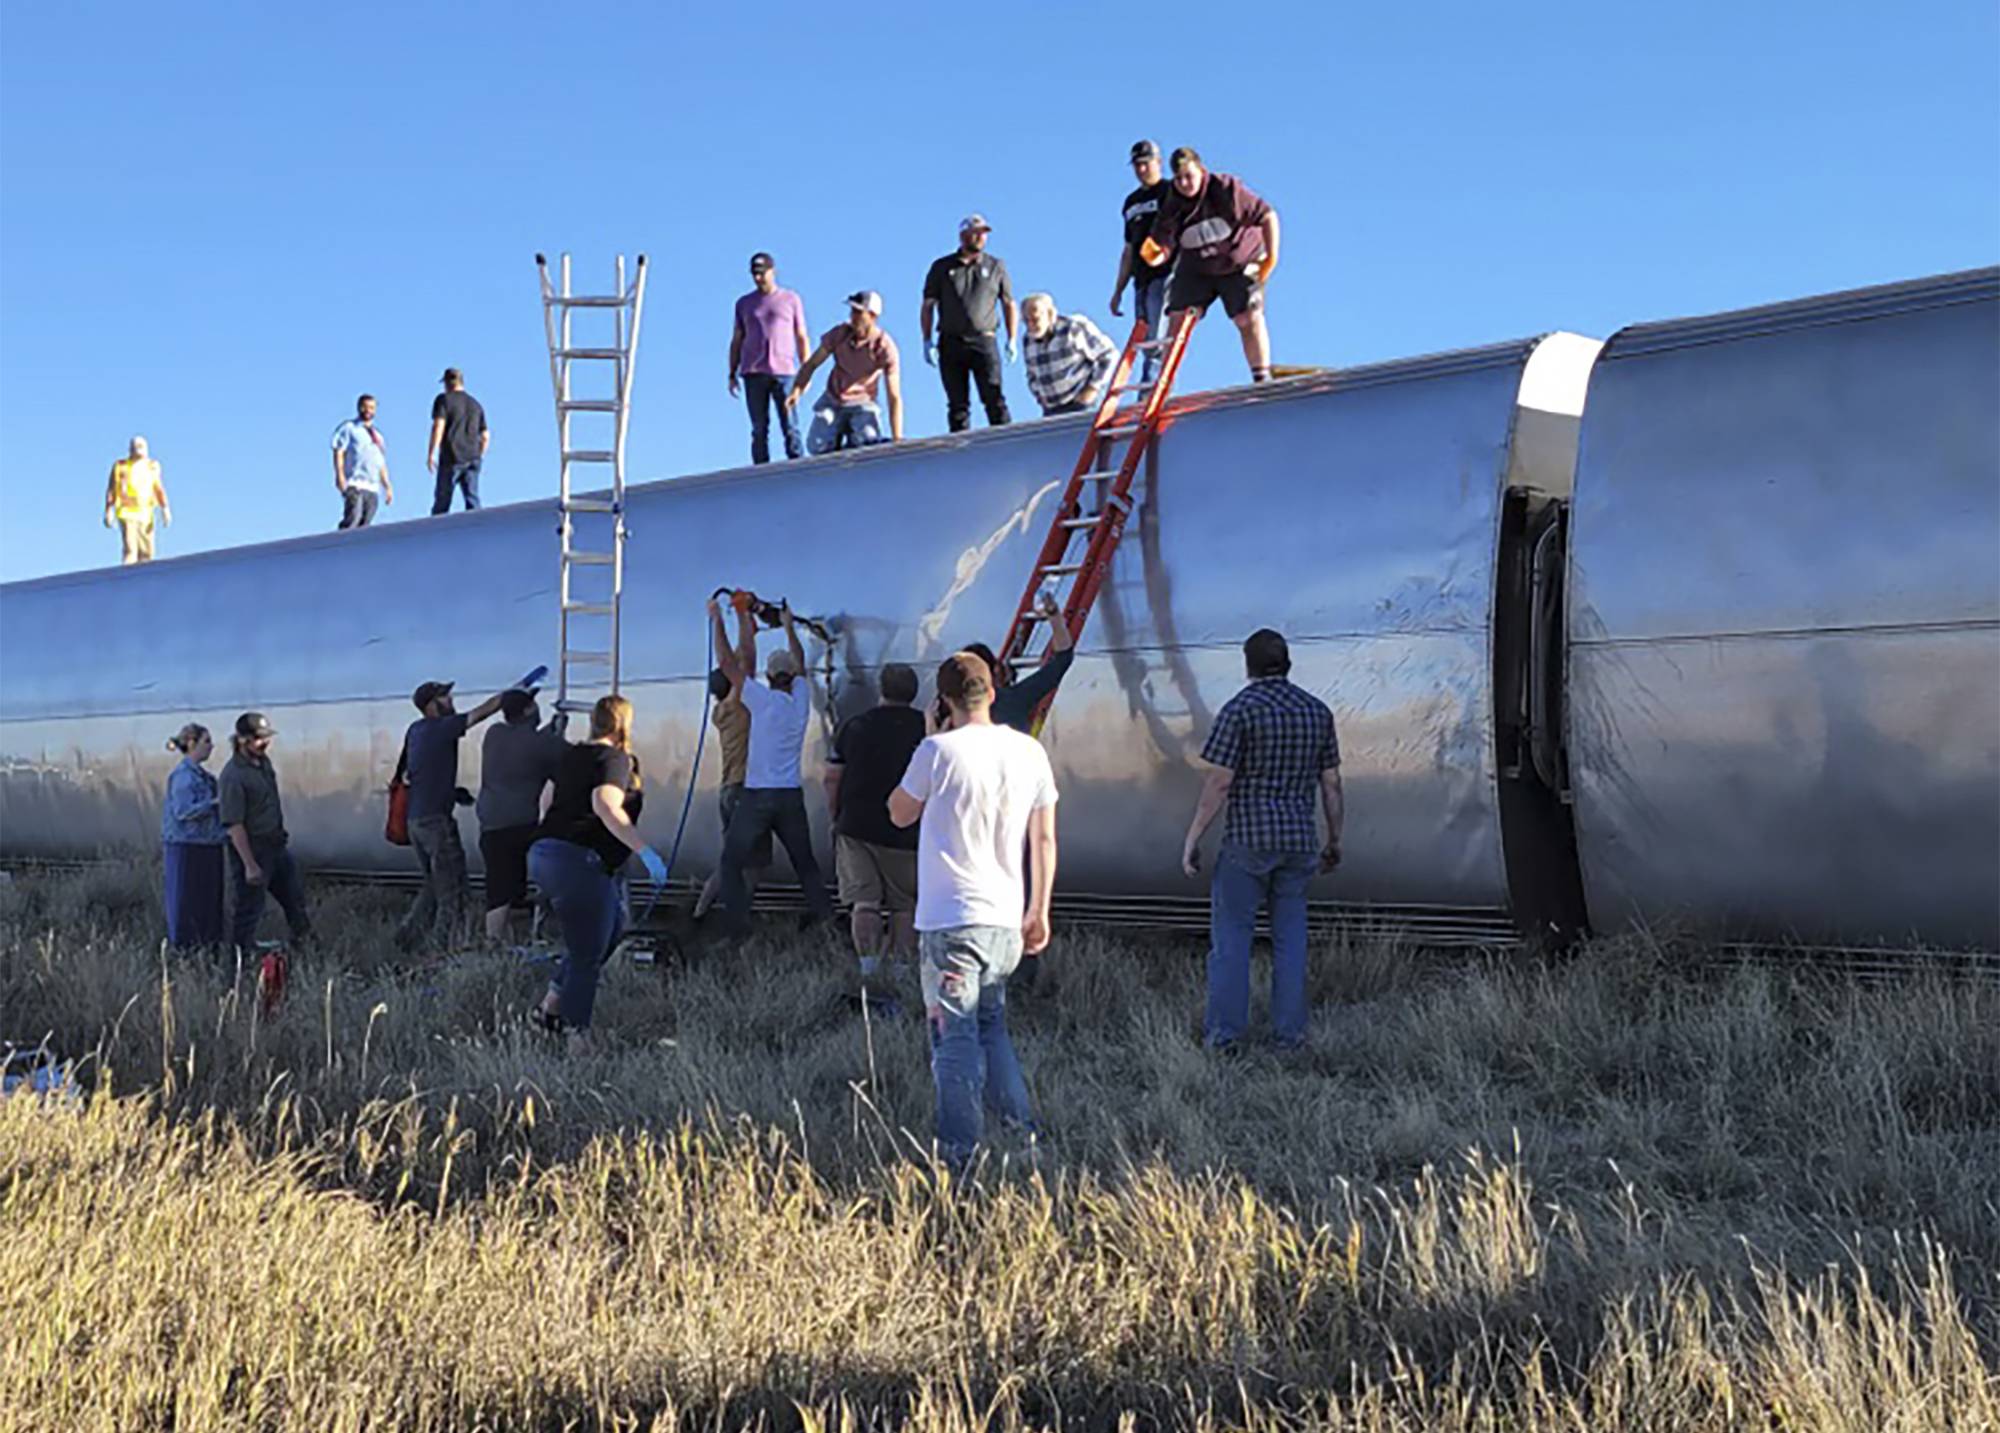 In this photo provided by Kimberly Fossen people work at the scene of an Amtrak train derailment on Saturday, in north-central Montana. Multiple people were injured when the train that runs between Seattle and Chicago derailed Saturday, the train agency said.